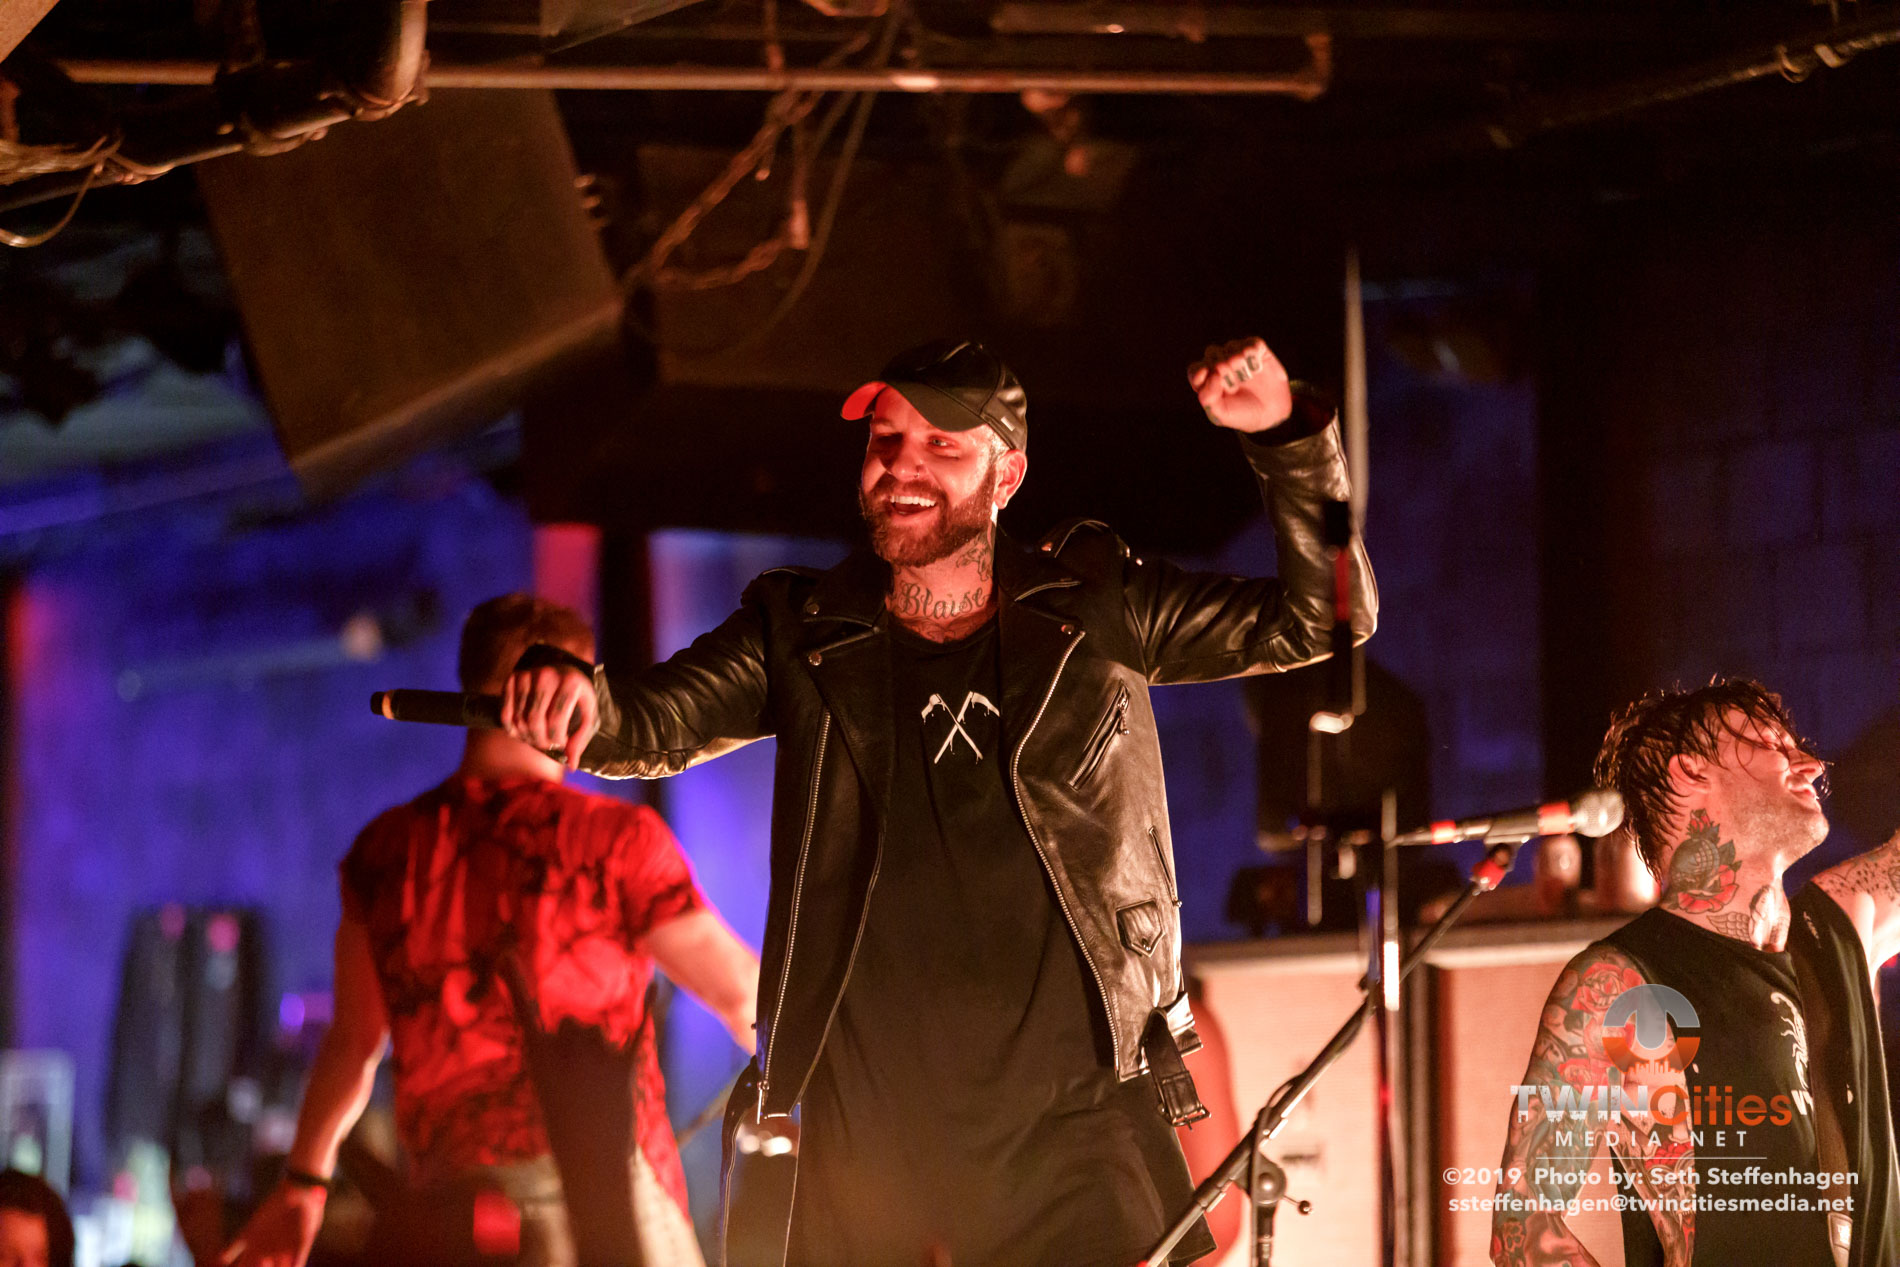 March 12, 2019 - Minneapolis, Minnesota, United States -  Atilla live in concert at The Cabooze opening for All That Remains.(Photo by Seth Steffenhagen/Steffenhagen Photography)